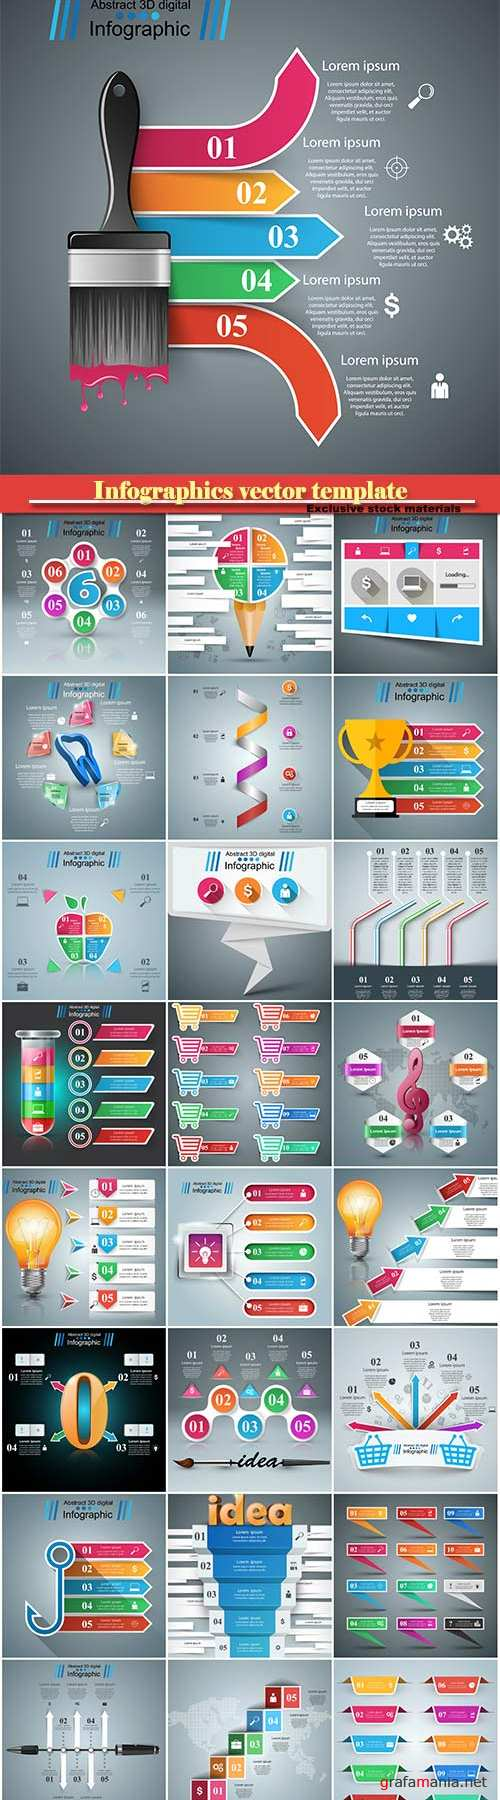 Infographics vector template for business presentations or information banner # 13